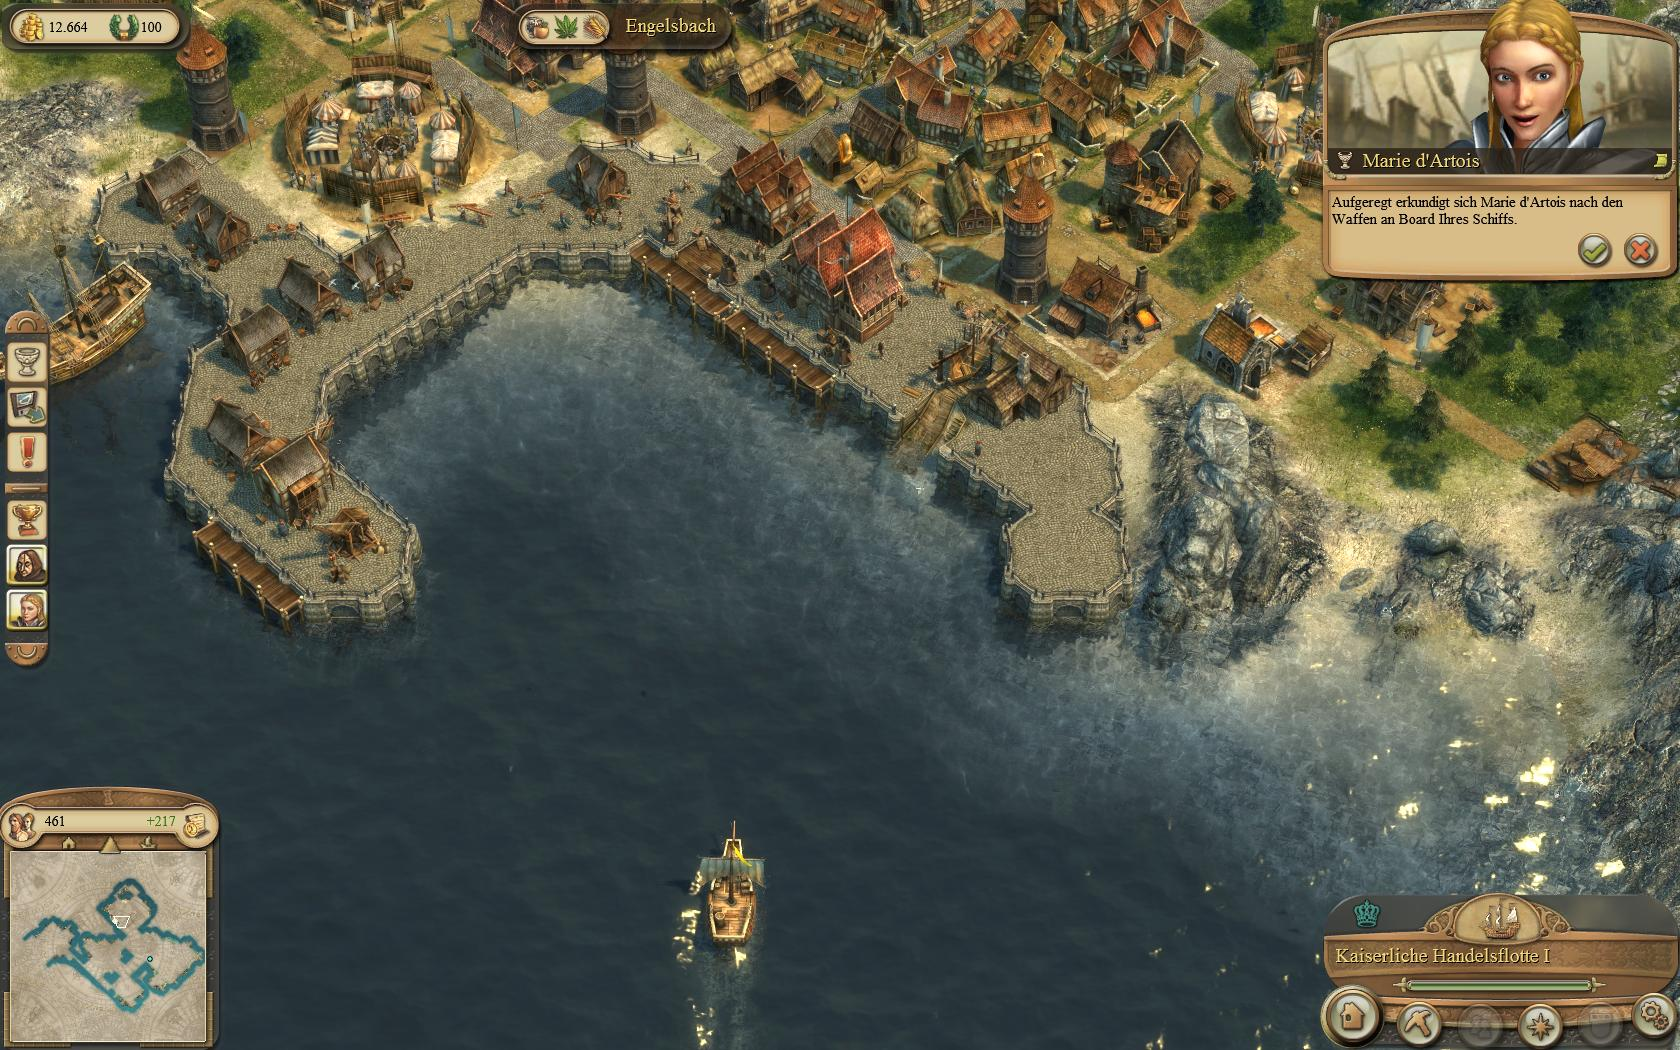 Aufbauspiel archiv pc game hunters anno 1404 gumiabroncs Choice Image